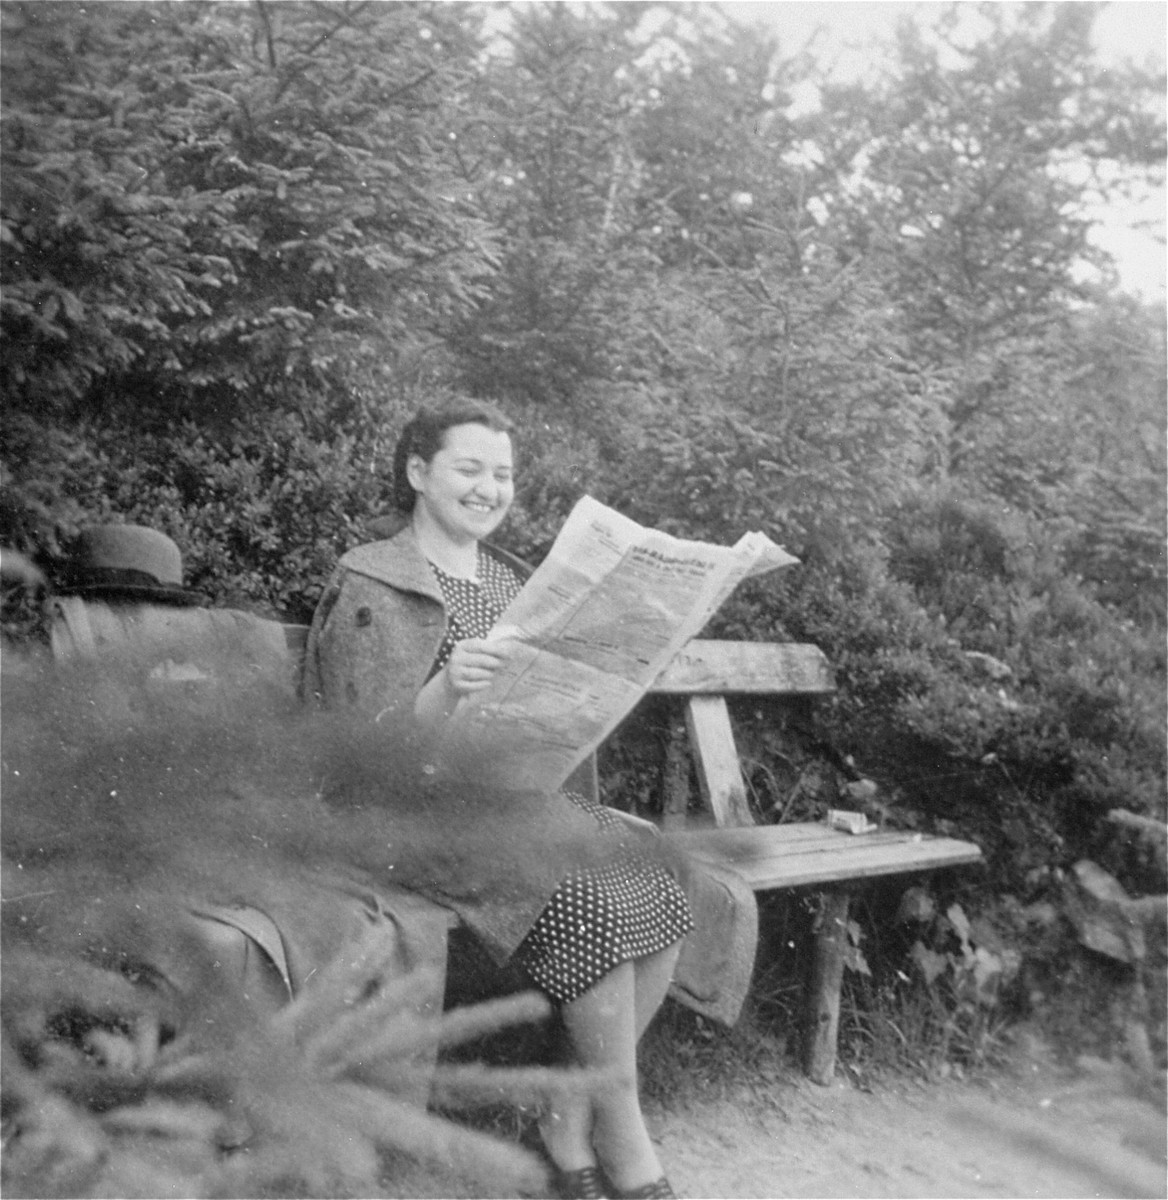 Portrait of the donor, Magda Herzog Muller, reading a newspaper on a park bench in the Czech resort of Trencianske-Teplice.